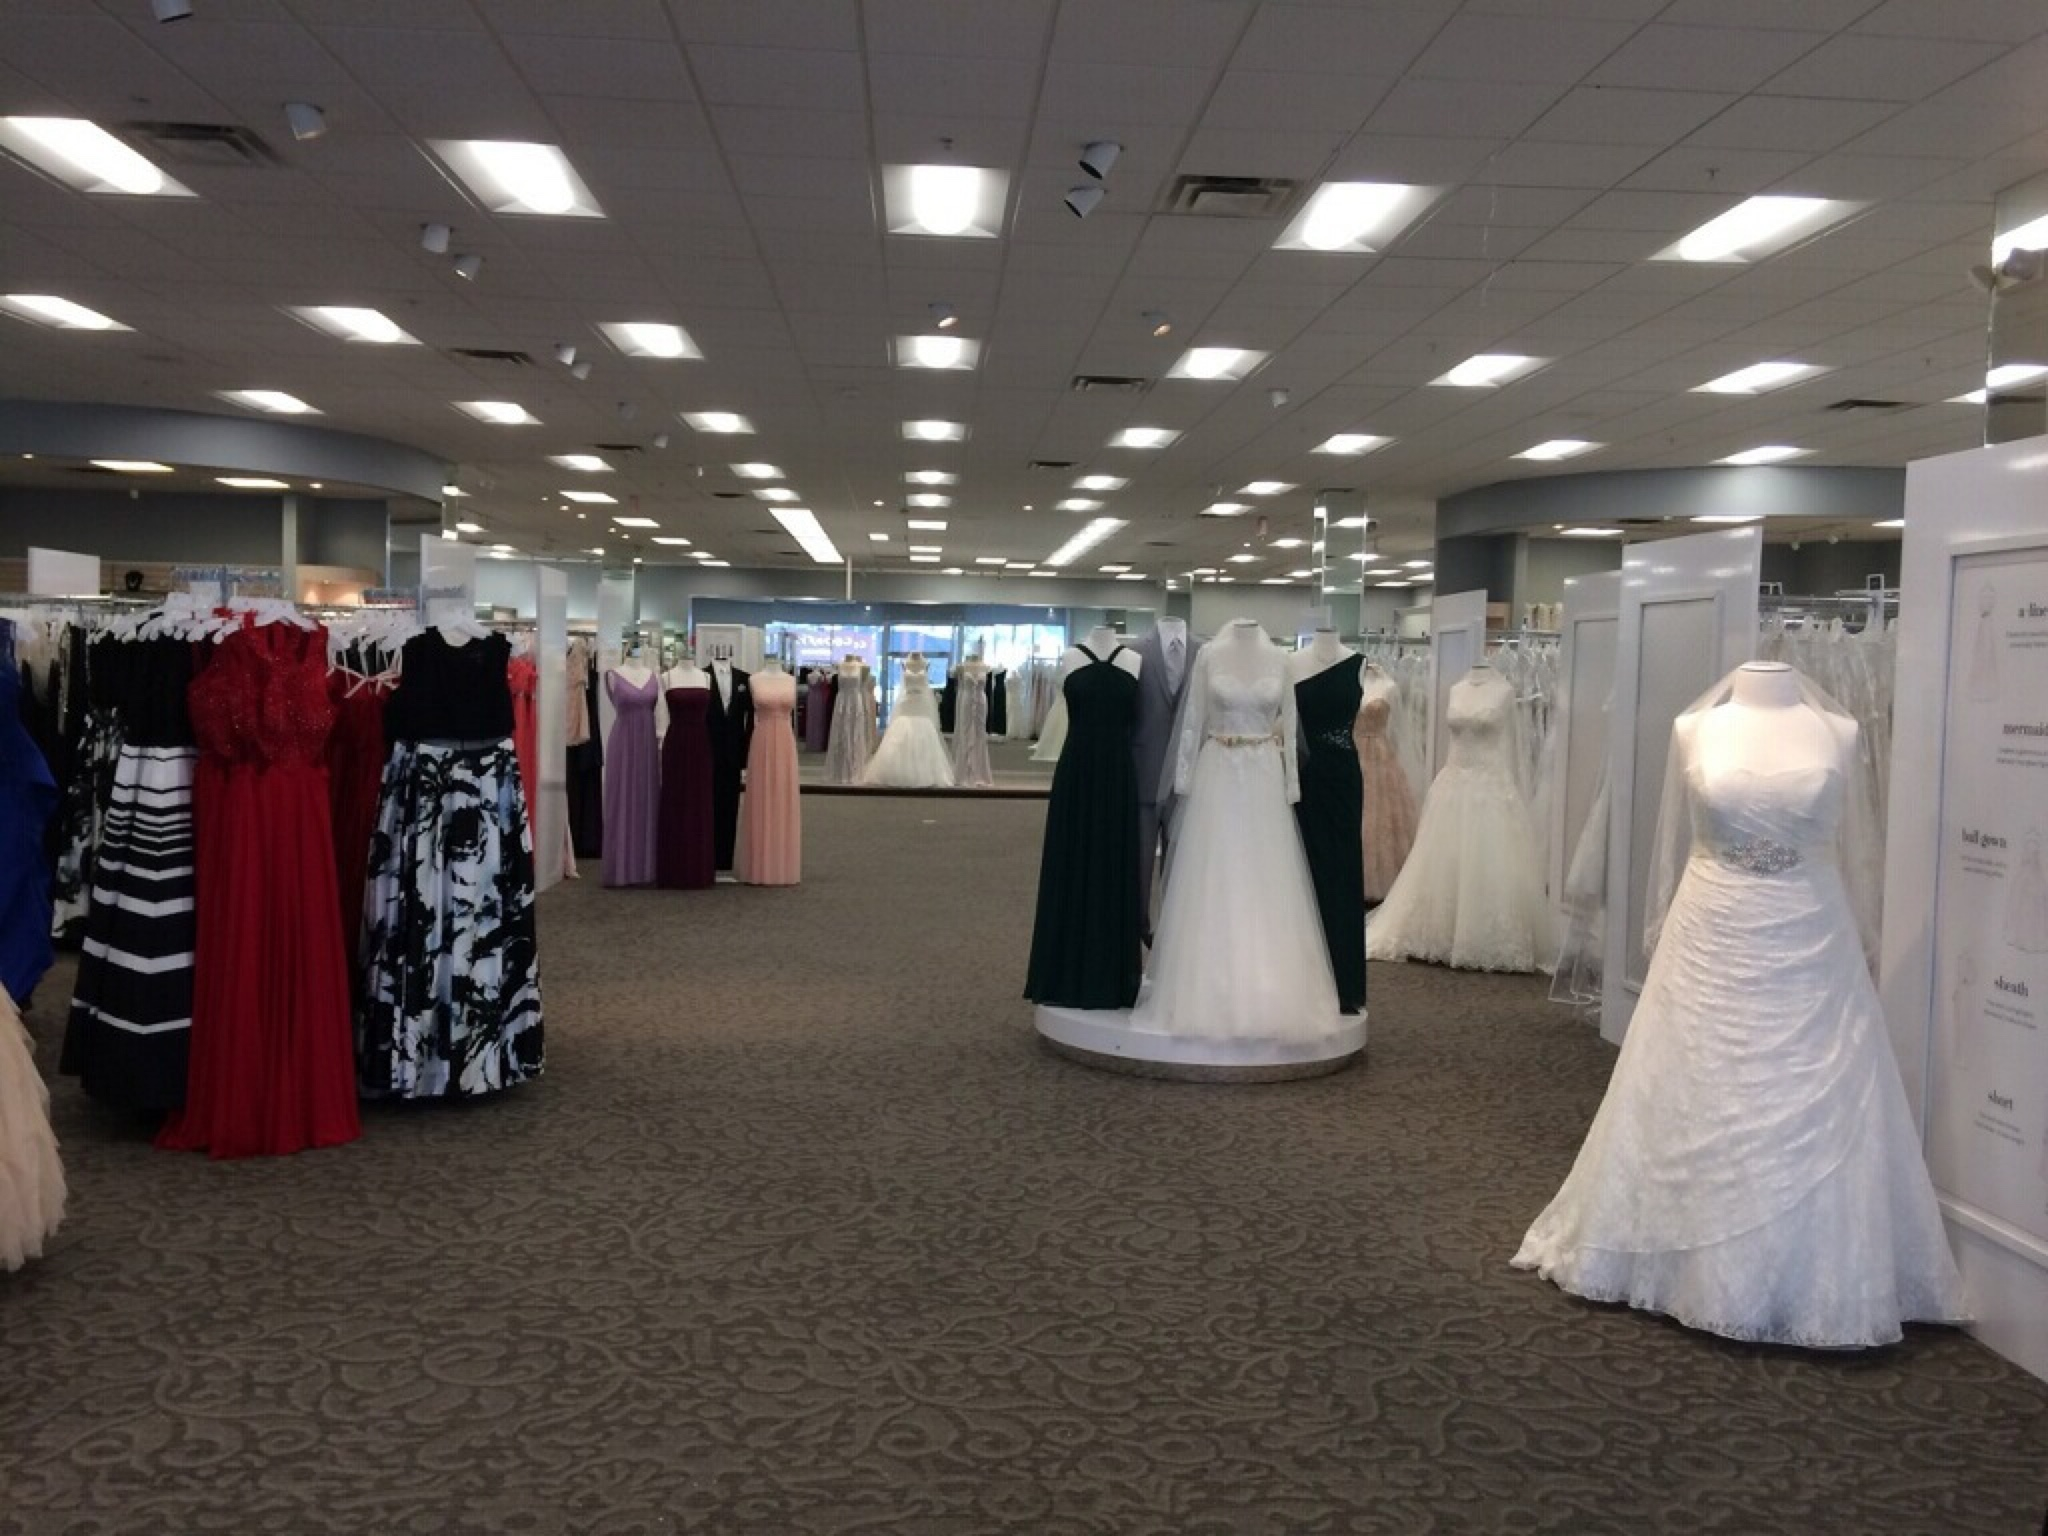 David 39 s bridal in syracuse ny 13214 for Wedding dress shops in syracuse ny